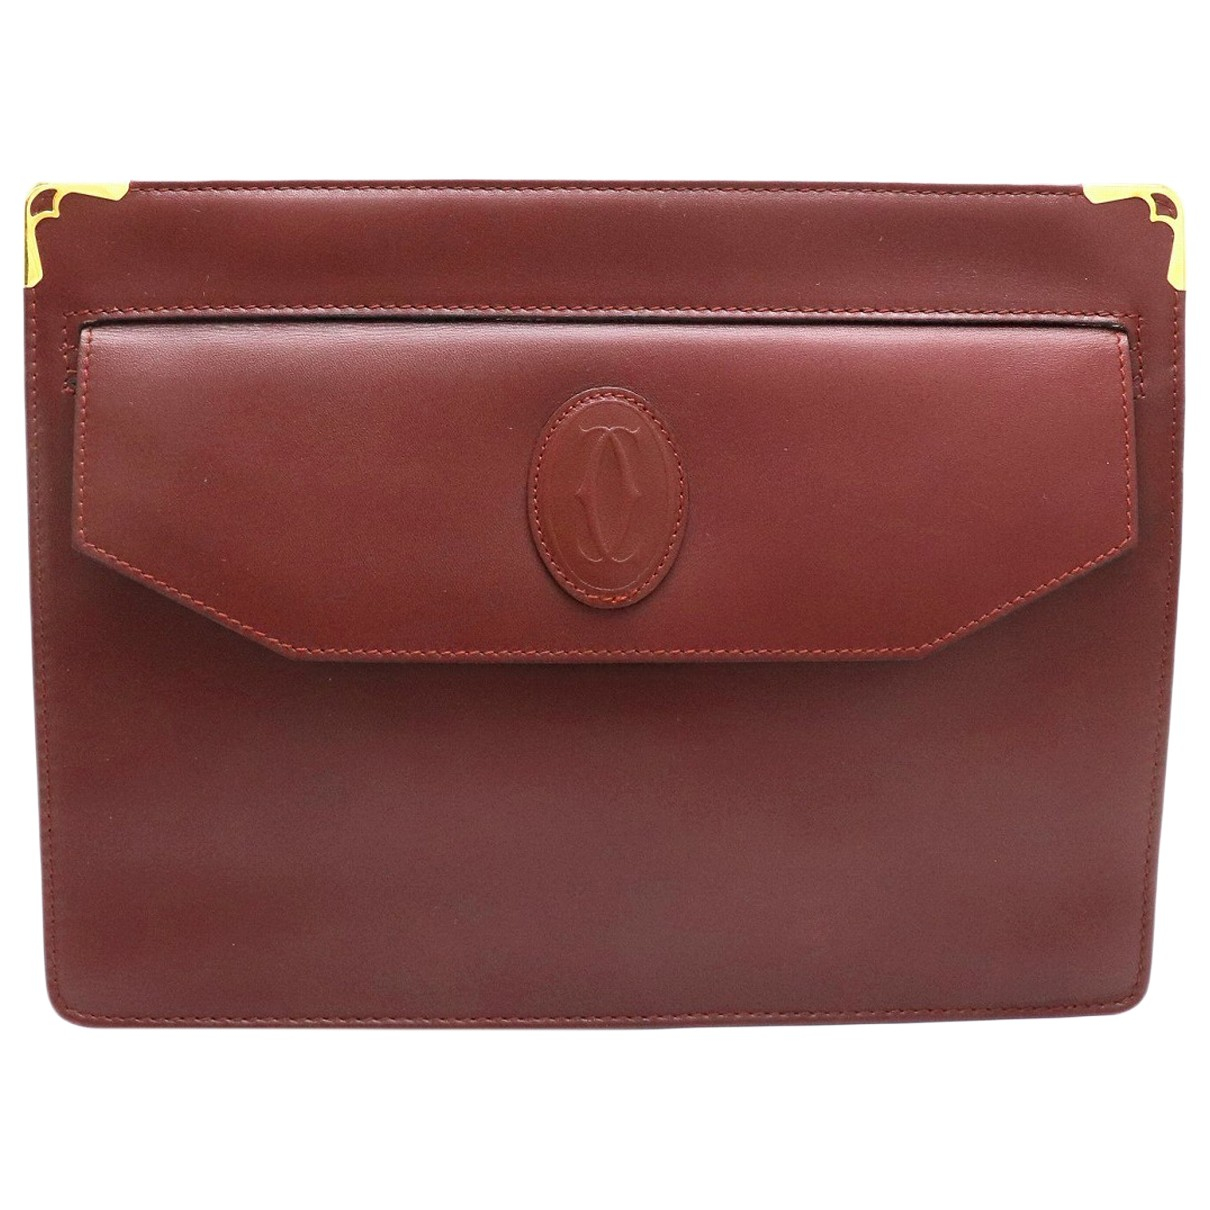 Cartier \N Burgundy Leather Clutch bag for Women \N